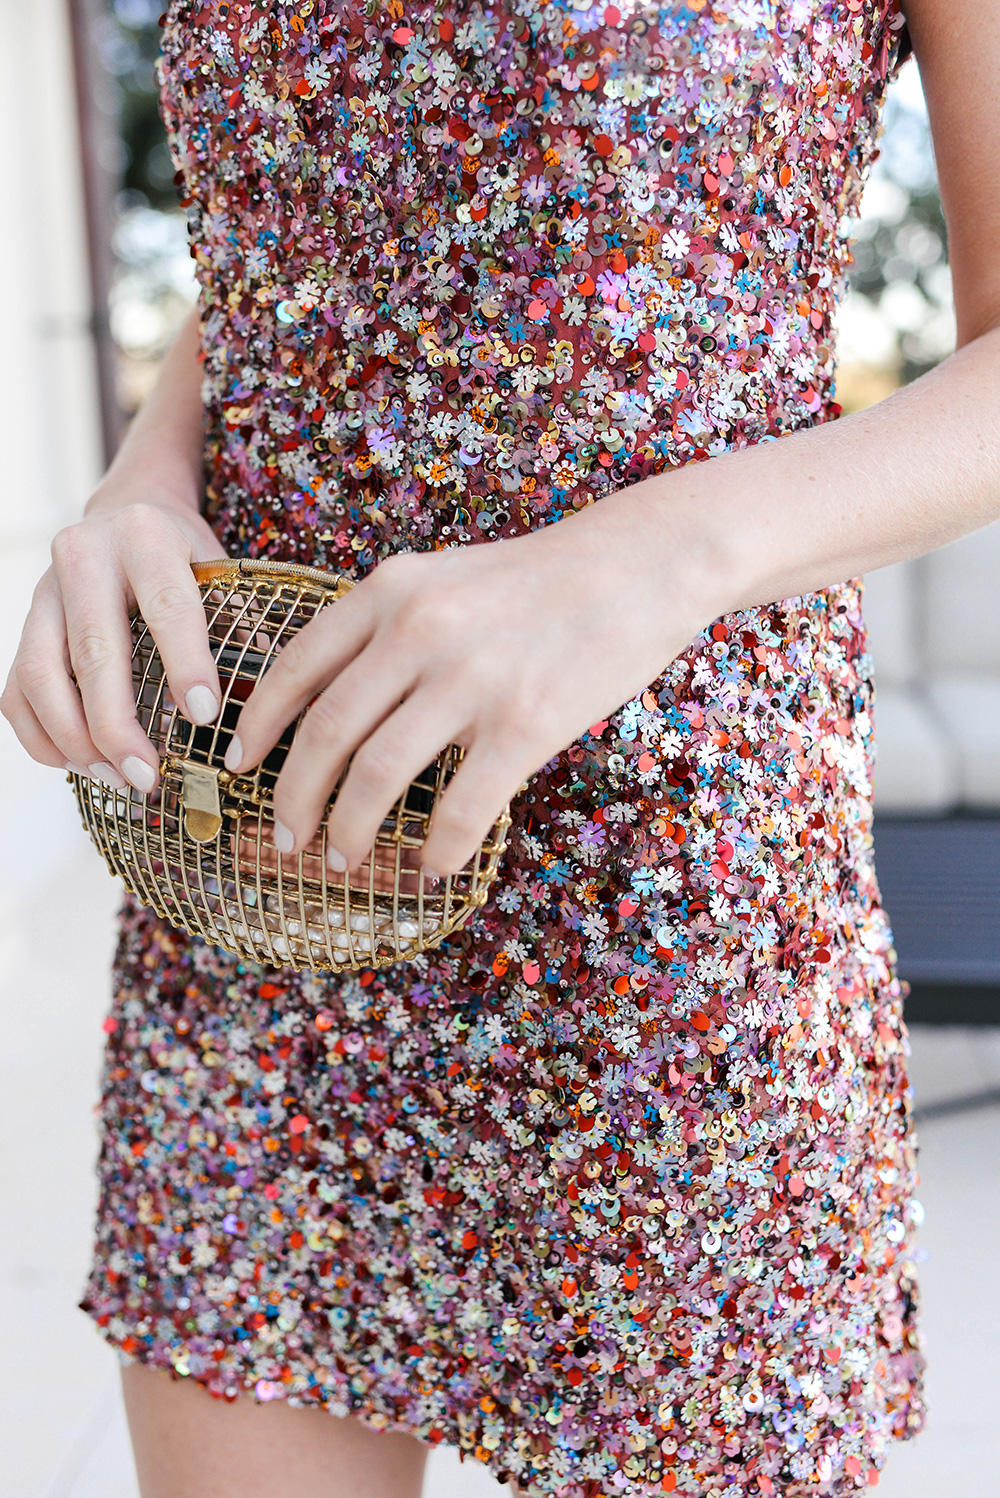 Alexis Sequin Dress   Holiday Party Outfit Guide